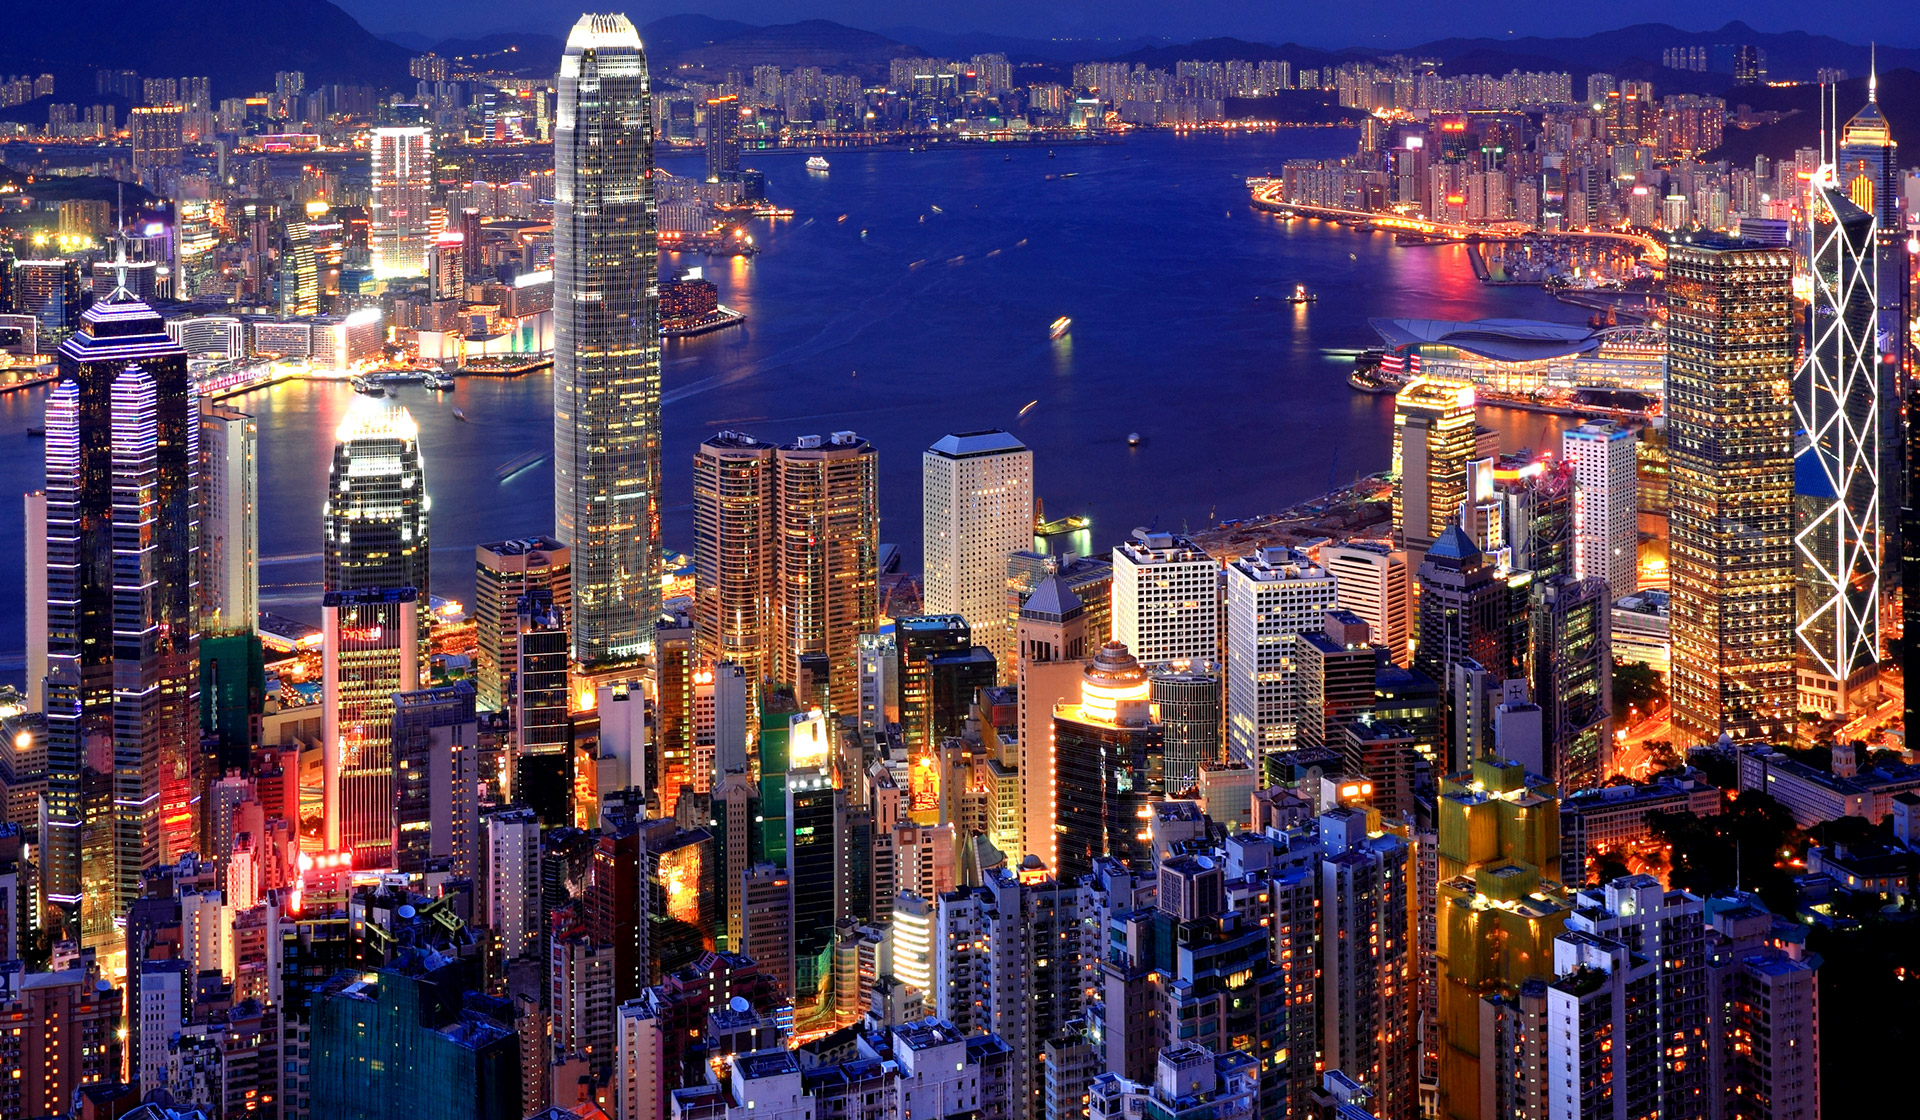 HongKong looking for sommelier and scotch expert for private tasting event